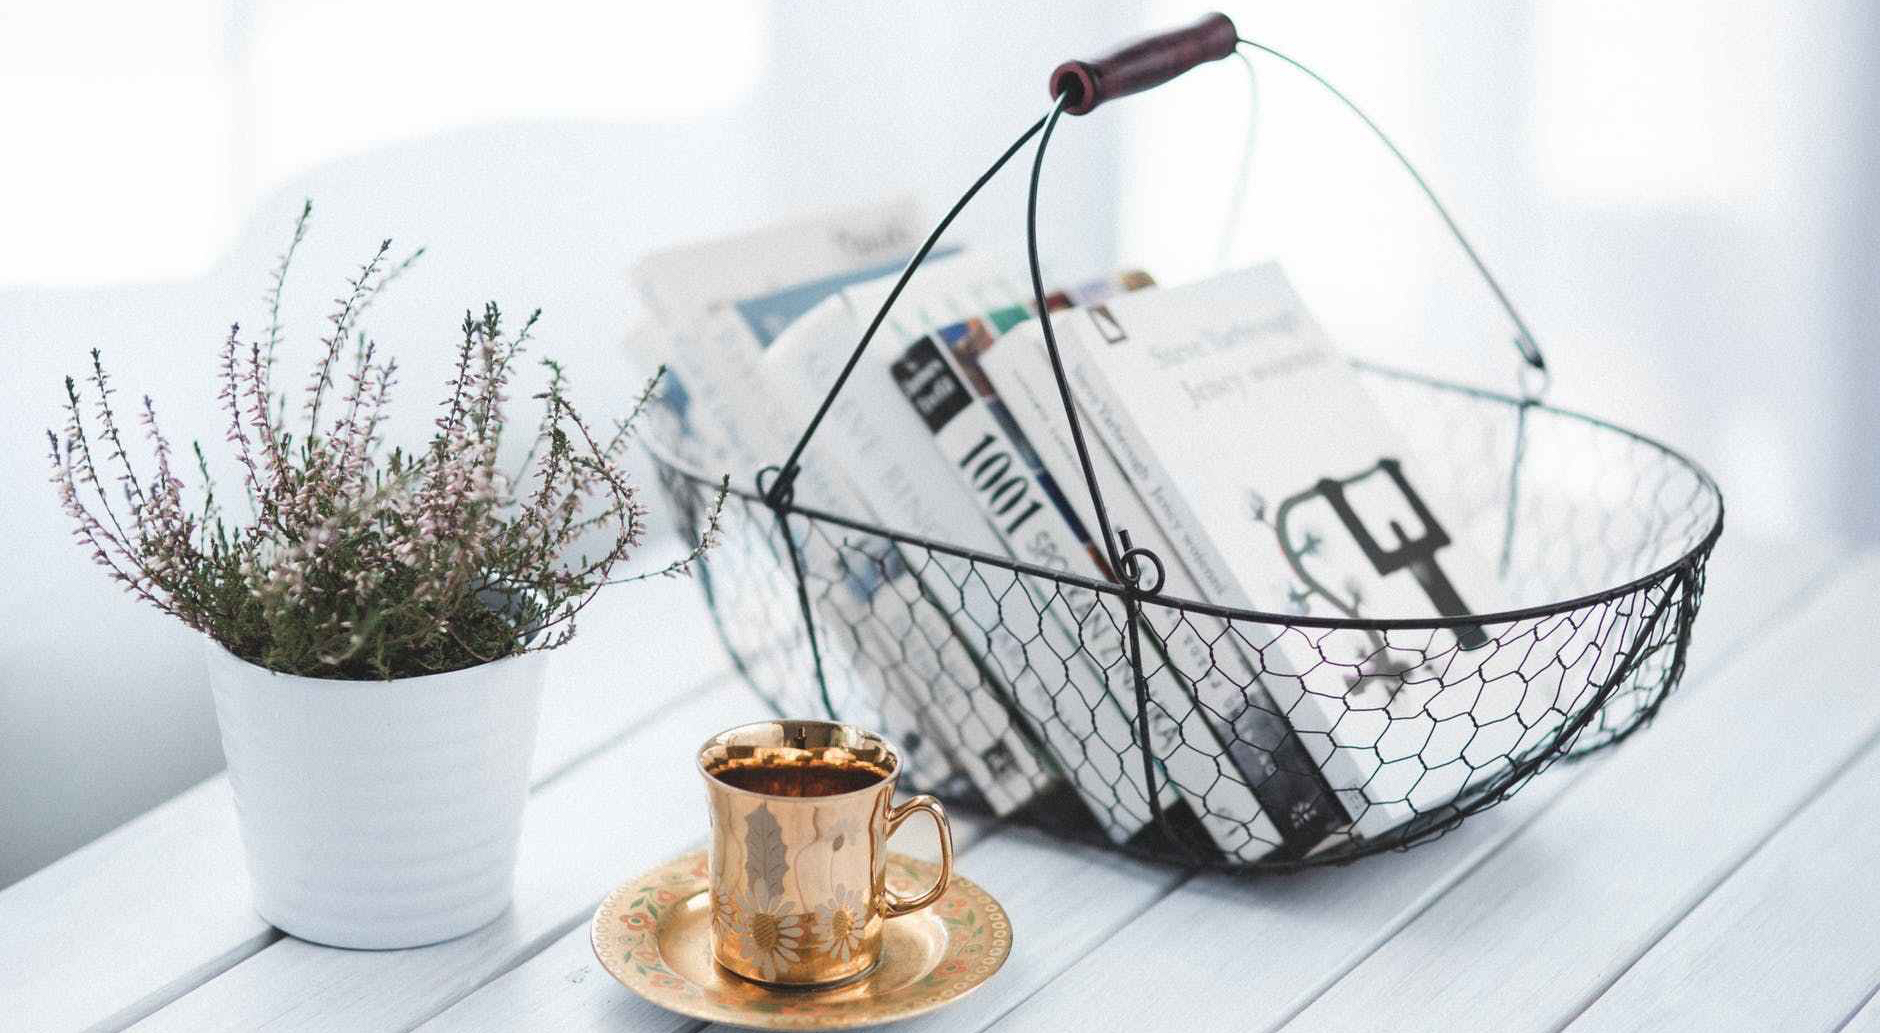 books in basket, golden cut, and potted plant